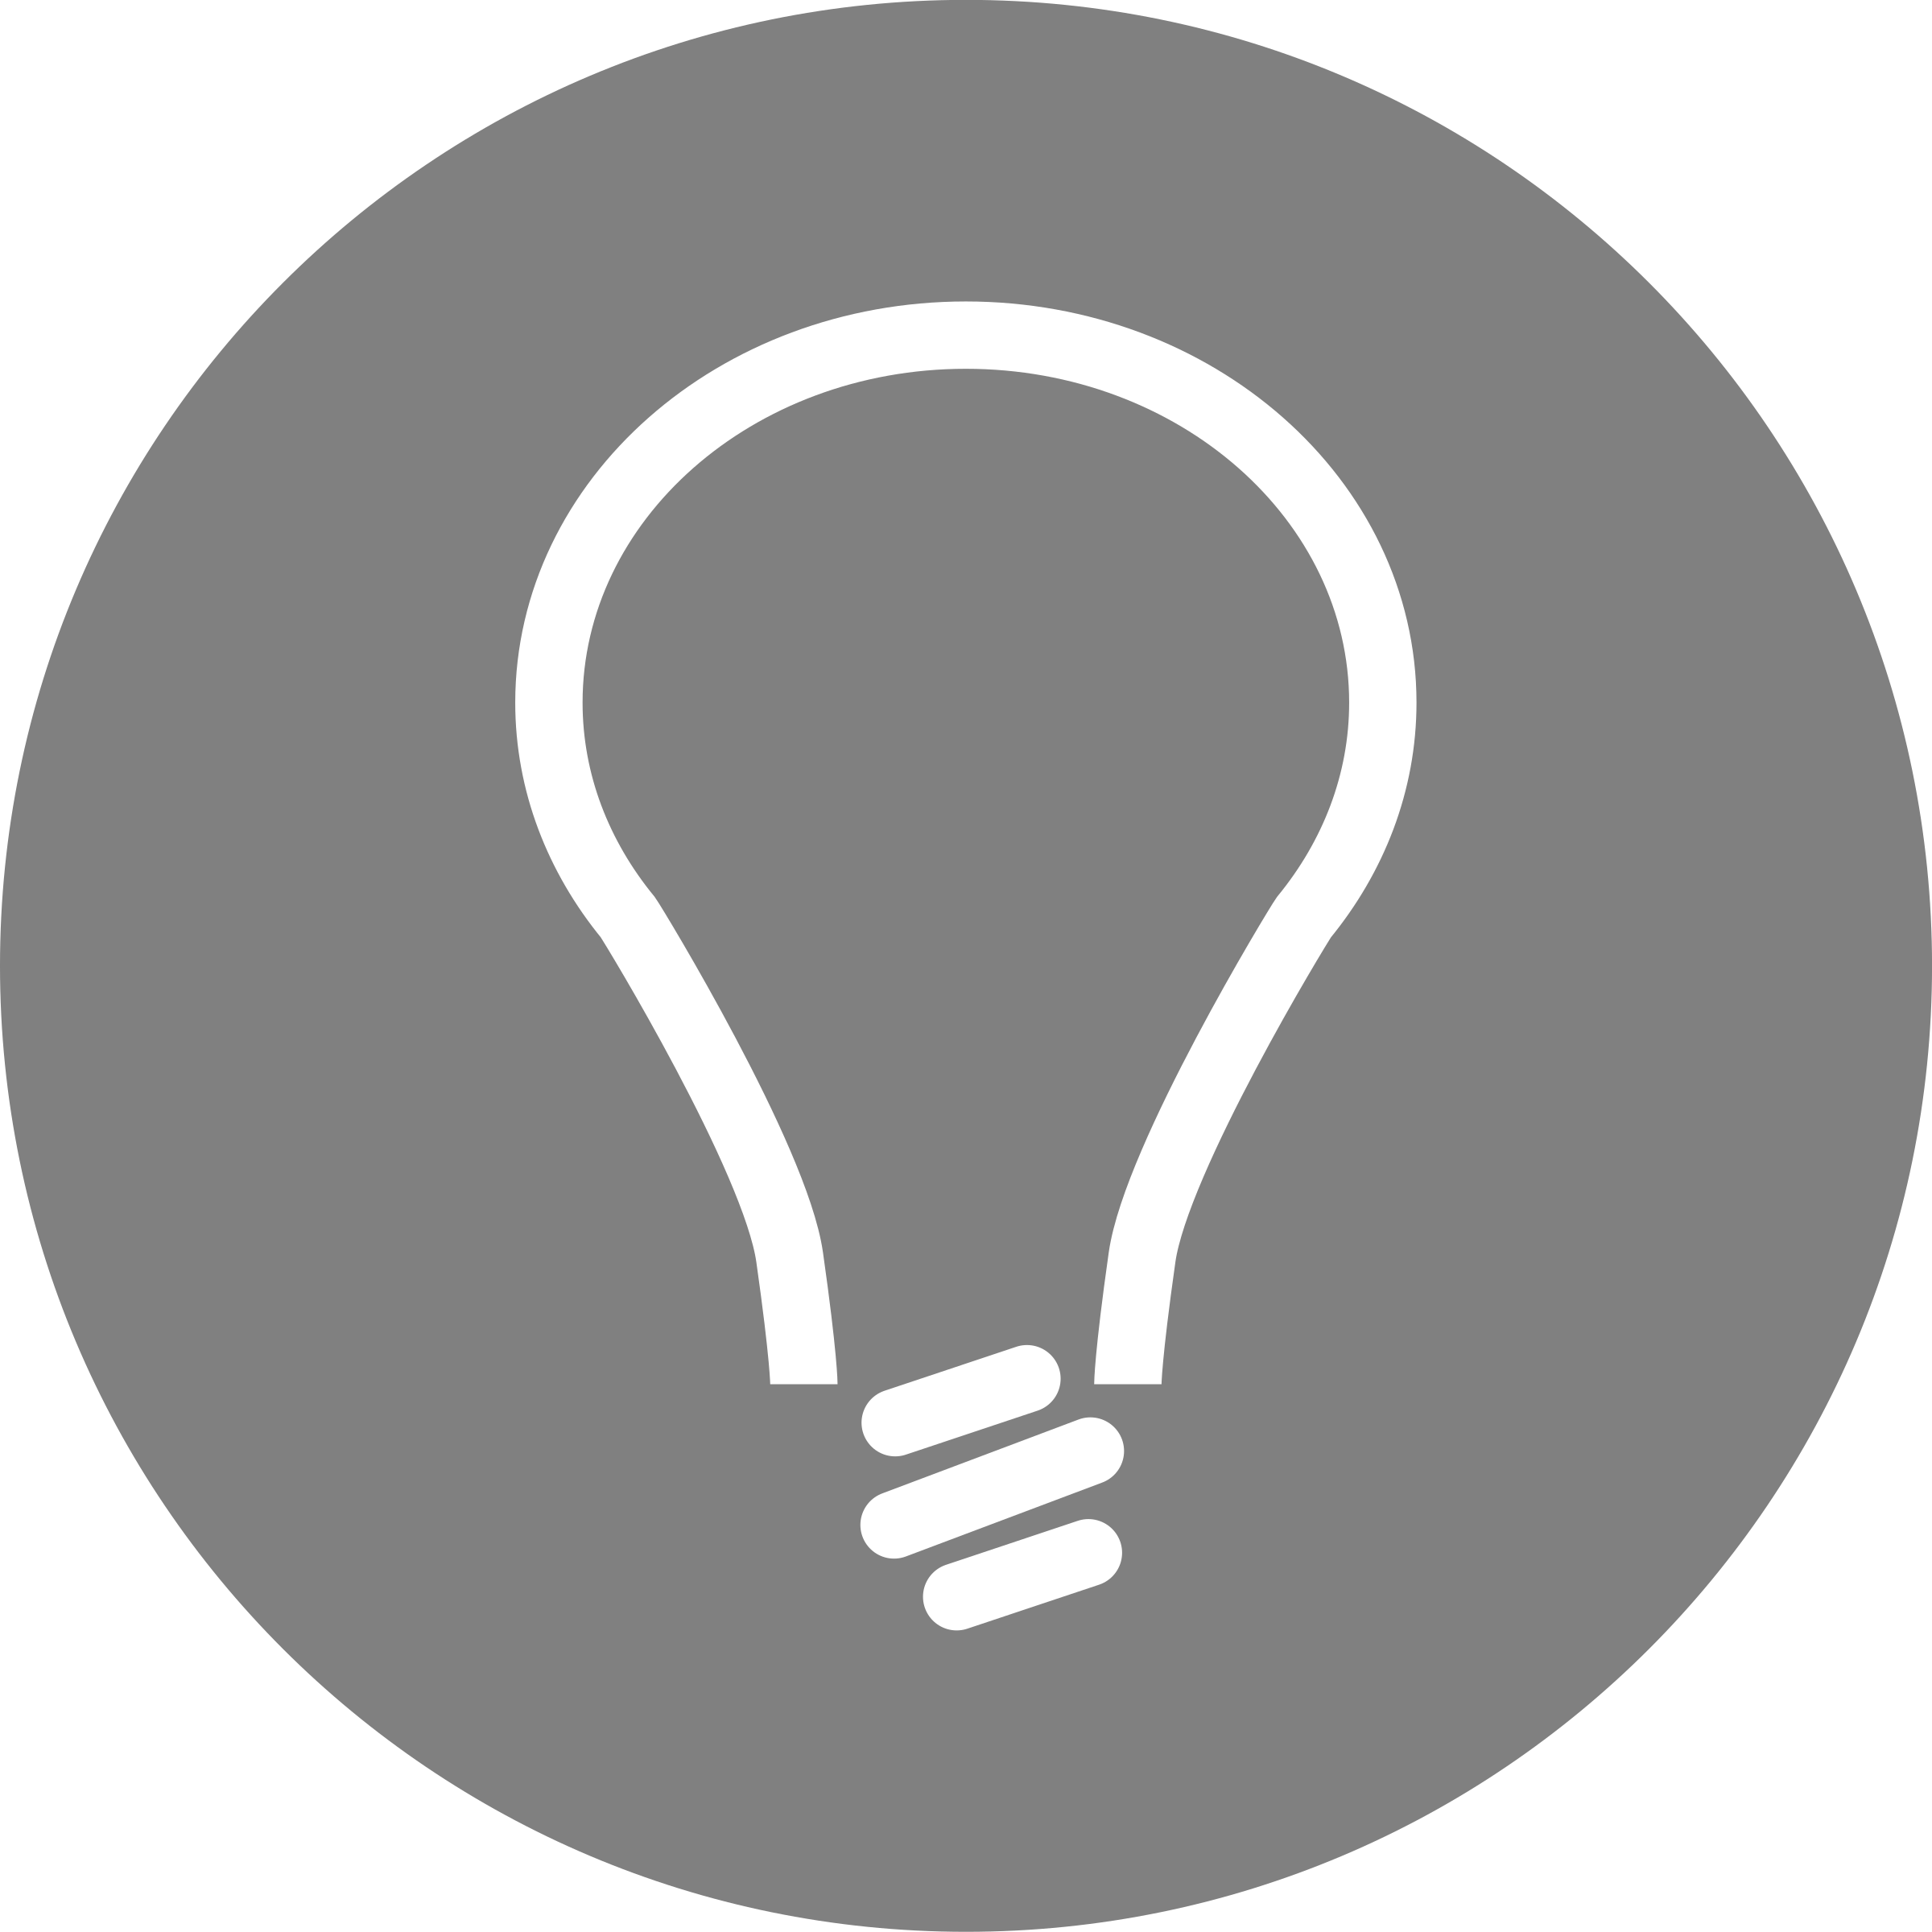 Idea Icon by ben